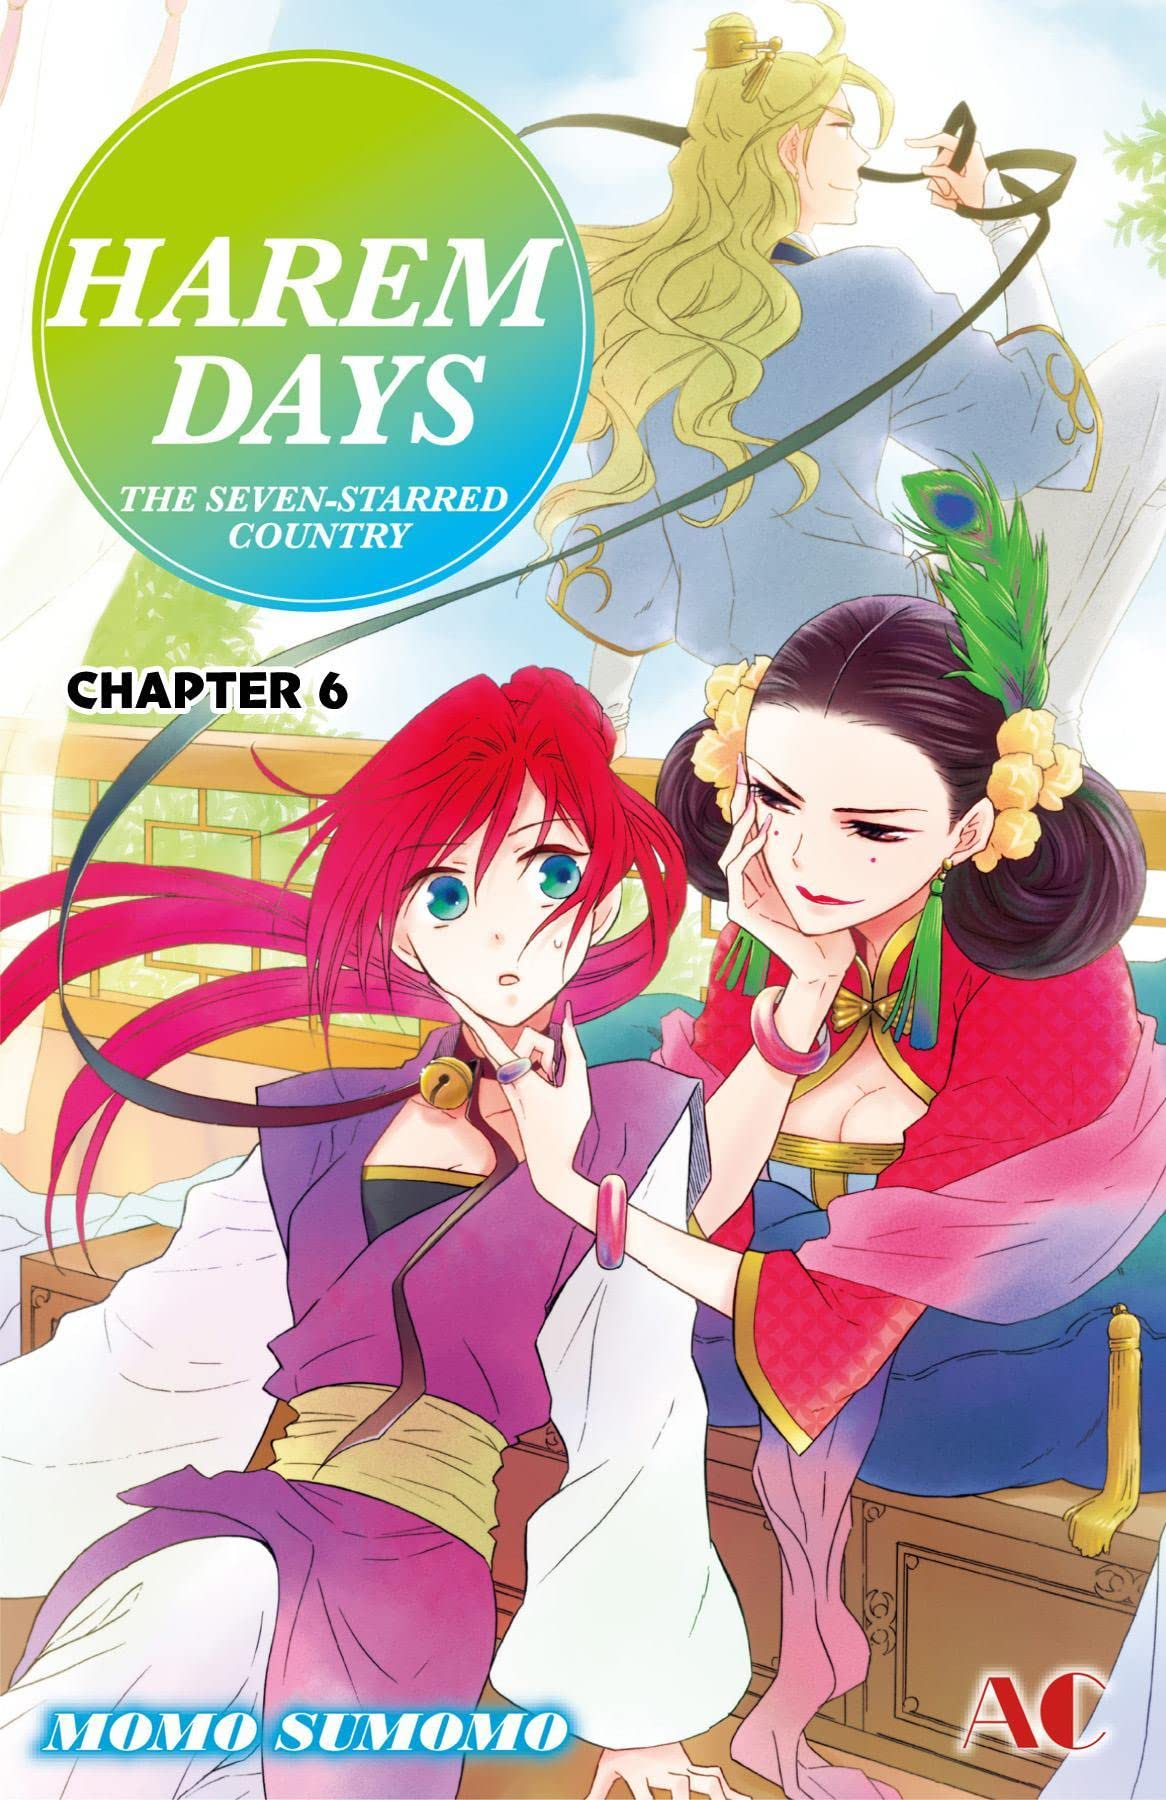 HAREM DAYS THE SEVEN-STARRED COUNTRY #6